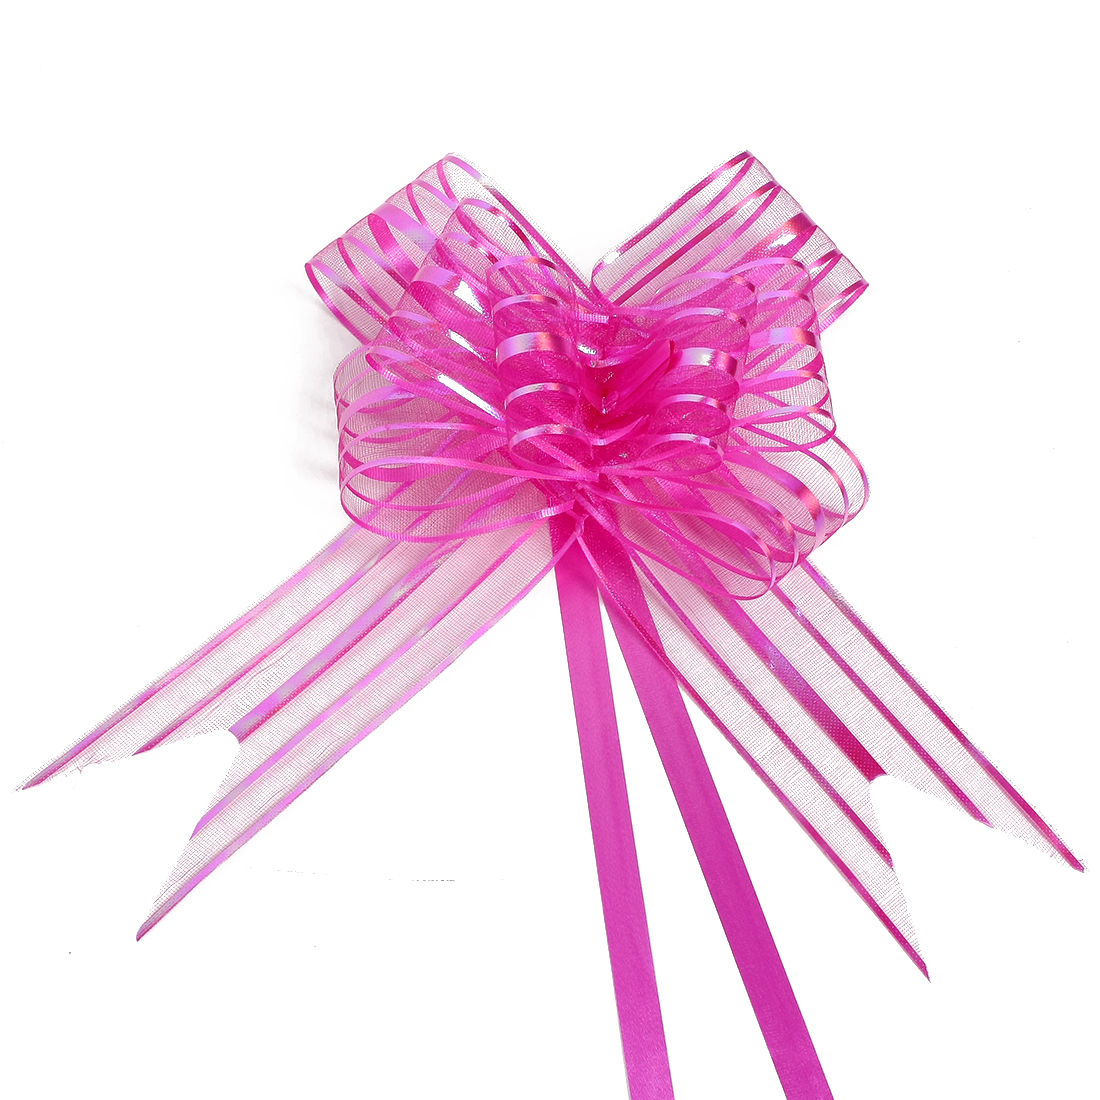 Wedding Party Gift Wrapping Ribbon Pull Bows Decoration Fuchsia 5cm Width 10pcs